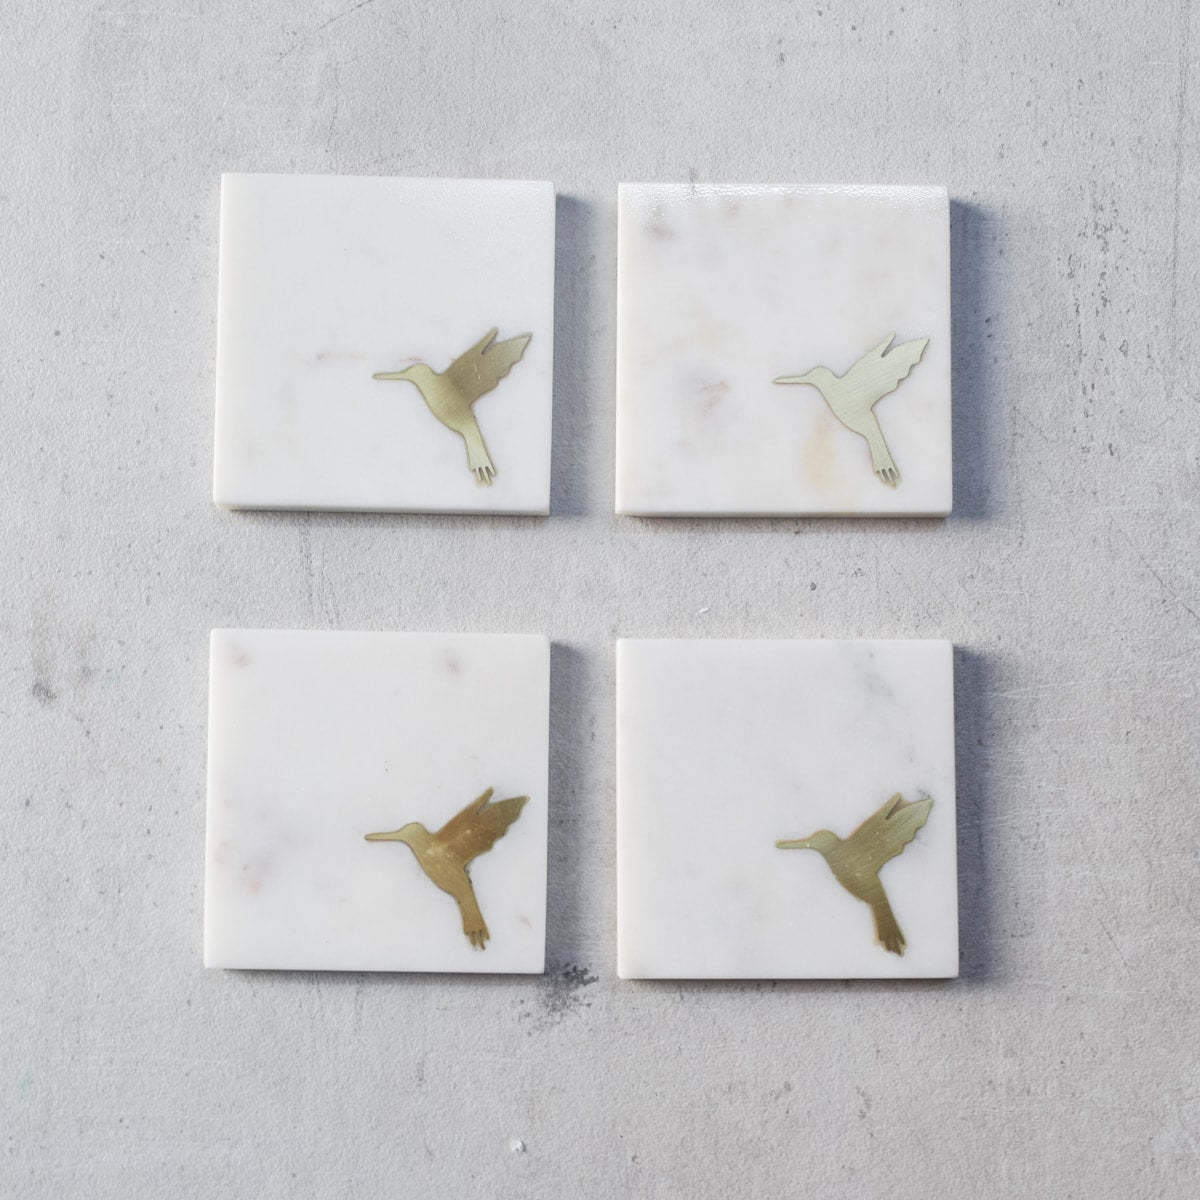 Casey Marble and Brass Humming Bird Coasters (Set of 4)